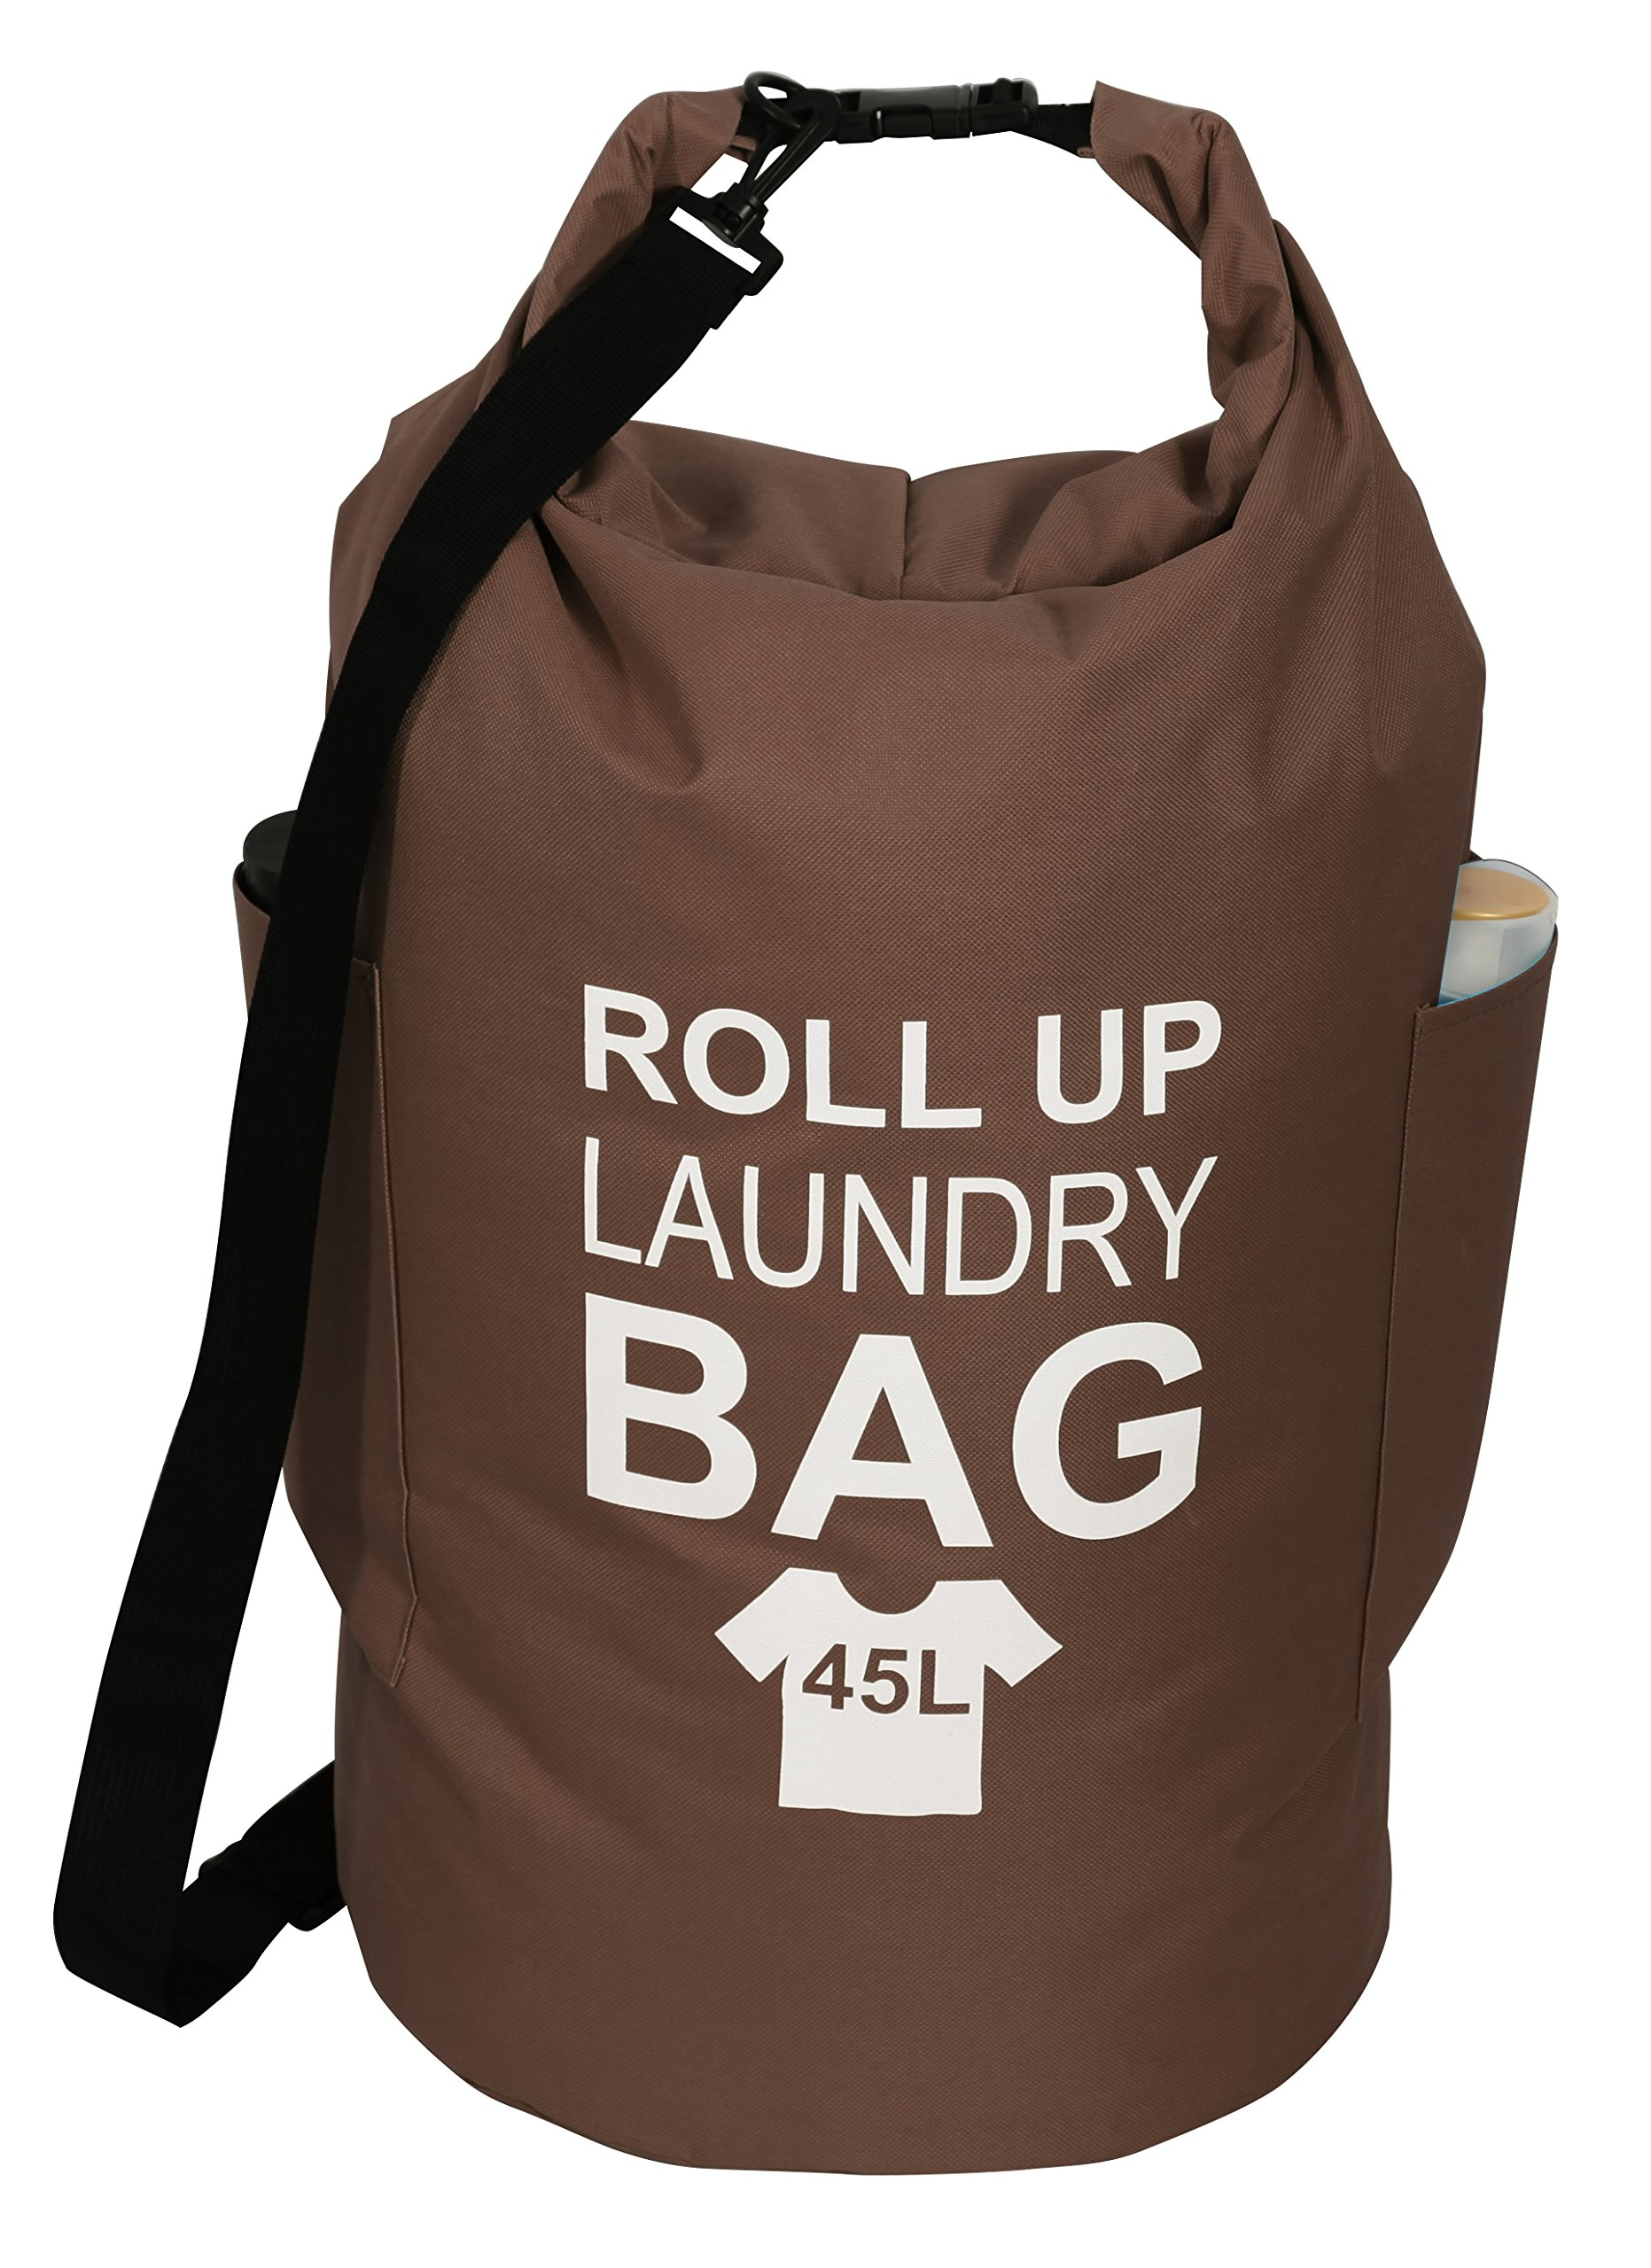 iTIDY Laundry Bag - Water Proof Roll Up Laundry Bag with Adjustable Shoulder Strap,Foldable Laundry Hamper Bag with Rolling up Closure and Fastener,Round Tall Laundry Bag Backpack Style, Brown